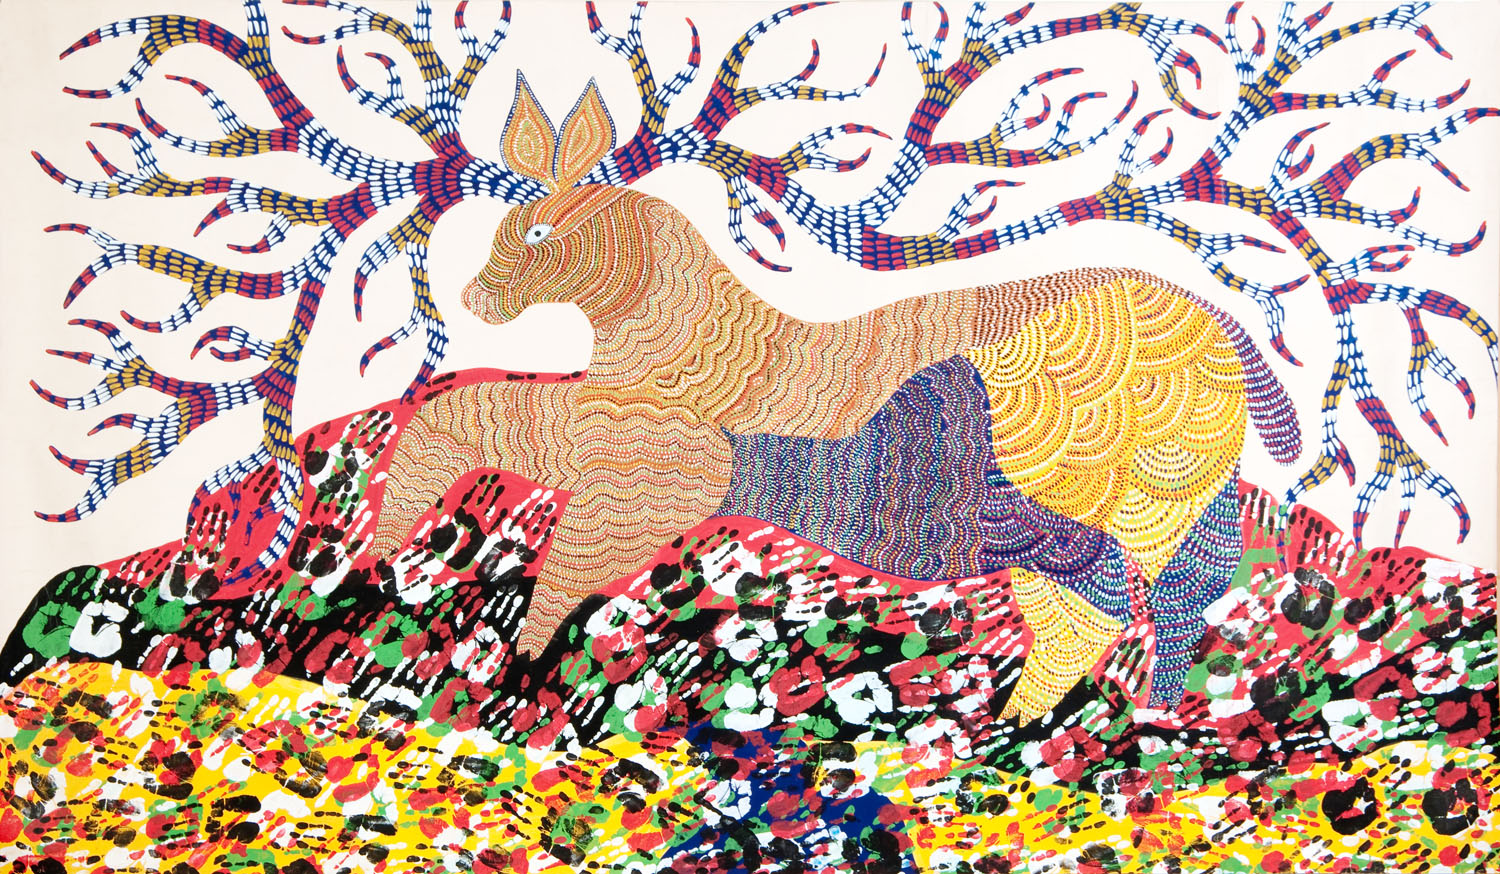 Antelope,  Jangarh Singh Shyam, c. 1990   Poster colour on paper; H. 137 cm, W. 233 cm From the Traditional & Ethnic Art collections at MAP